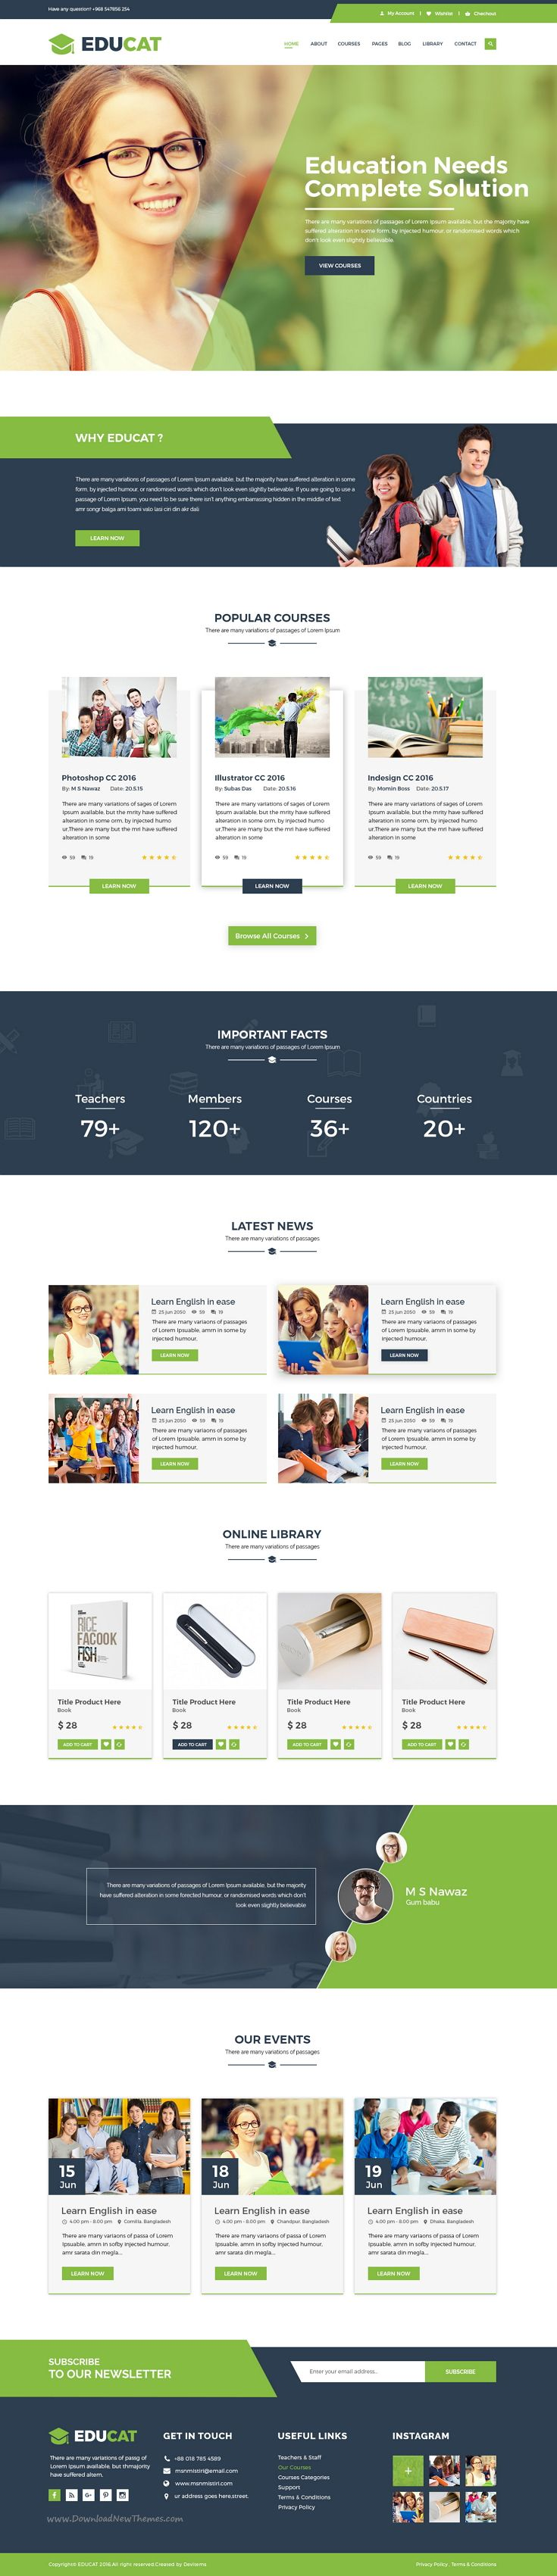 Best 25 website template ideas on pinterest business website educat education psd template free website pronofoot35fo Choice Image